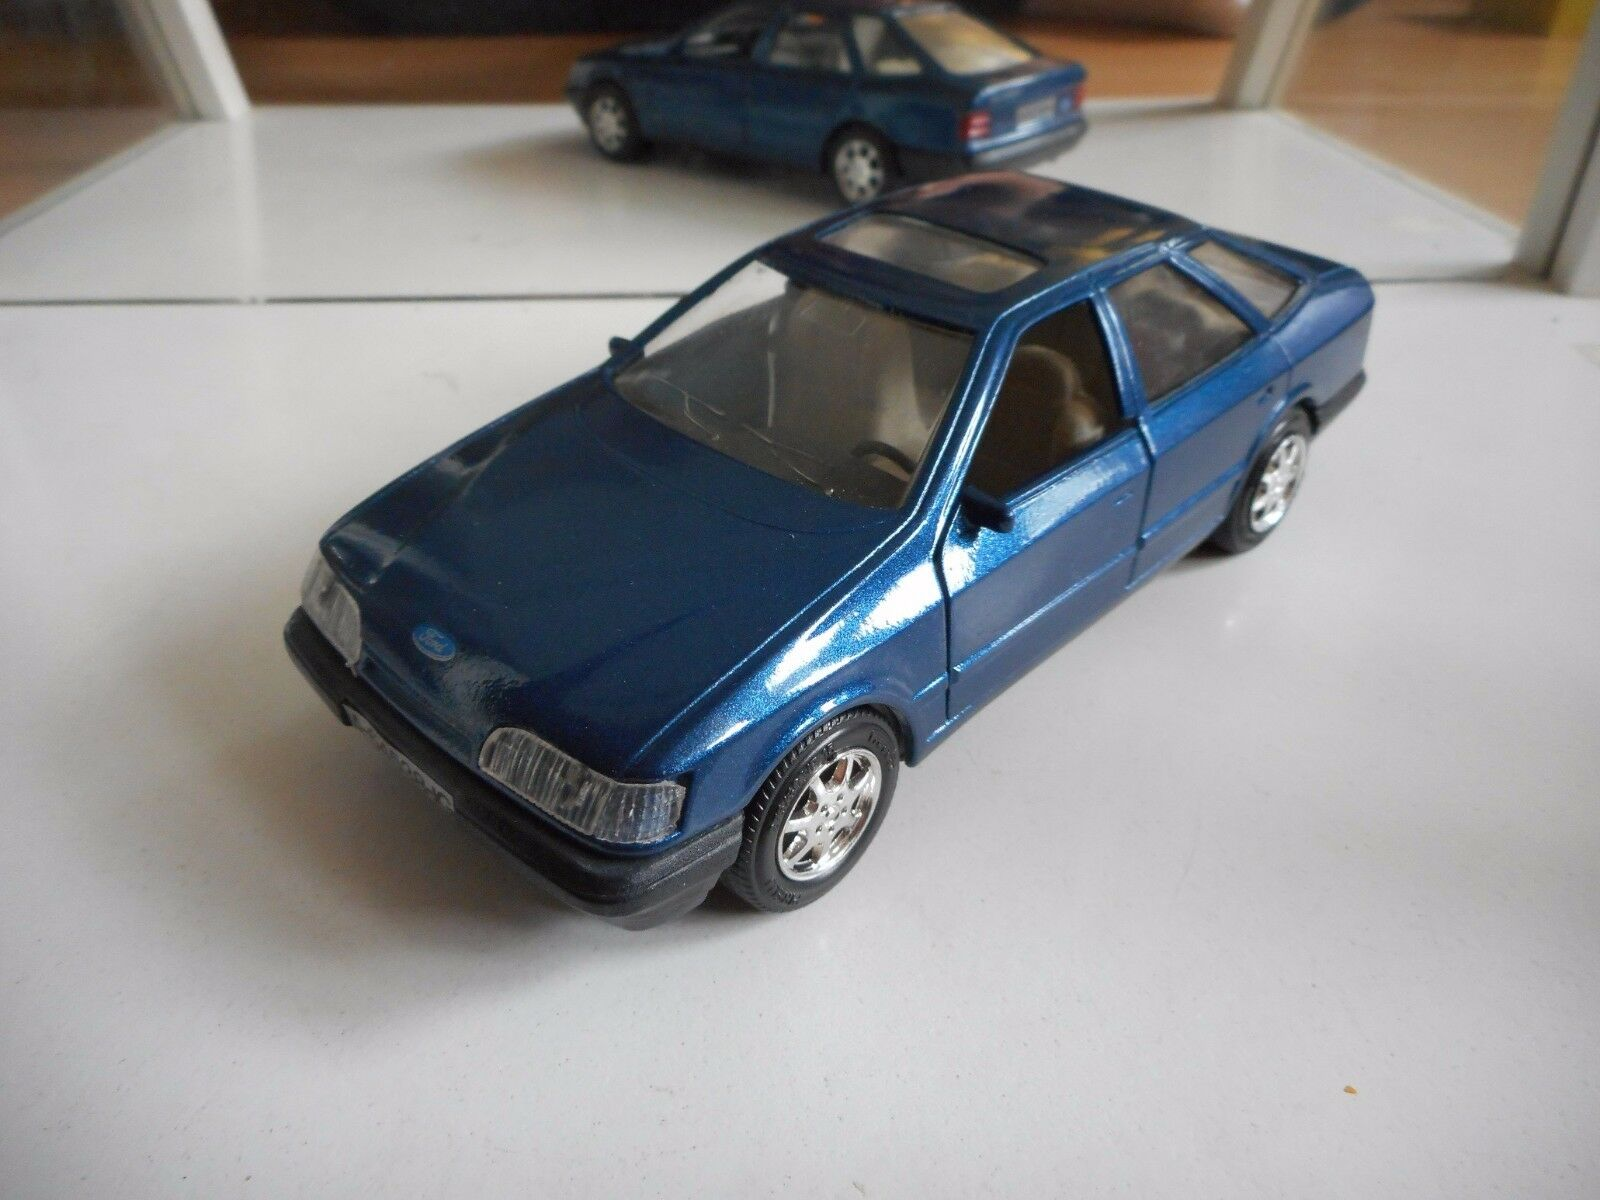 Guiloy Ford Scorpio 2.9 Ghia in bluee on 1 25